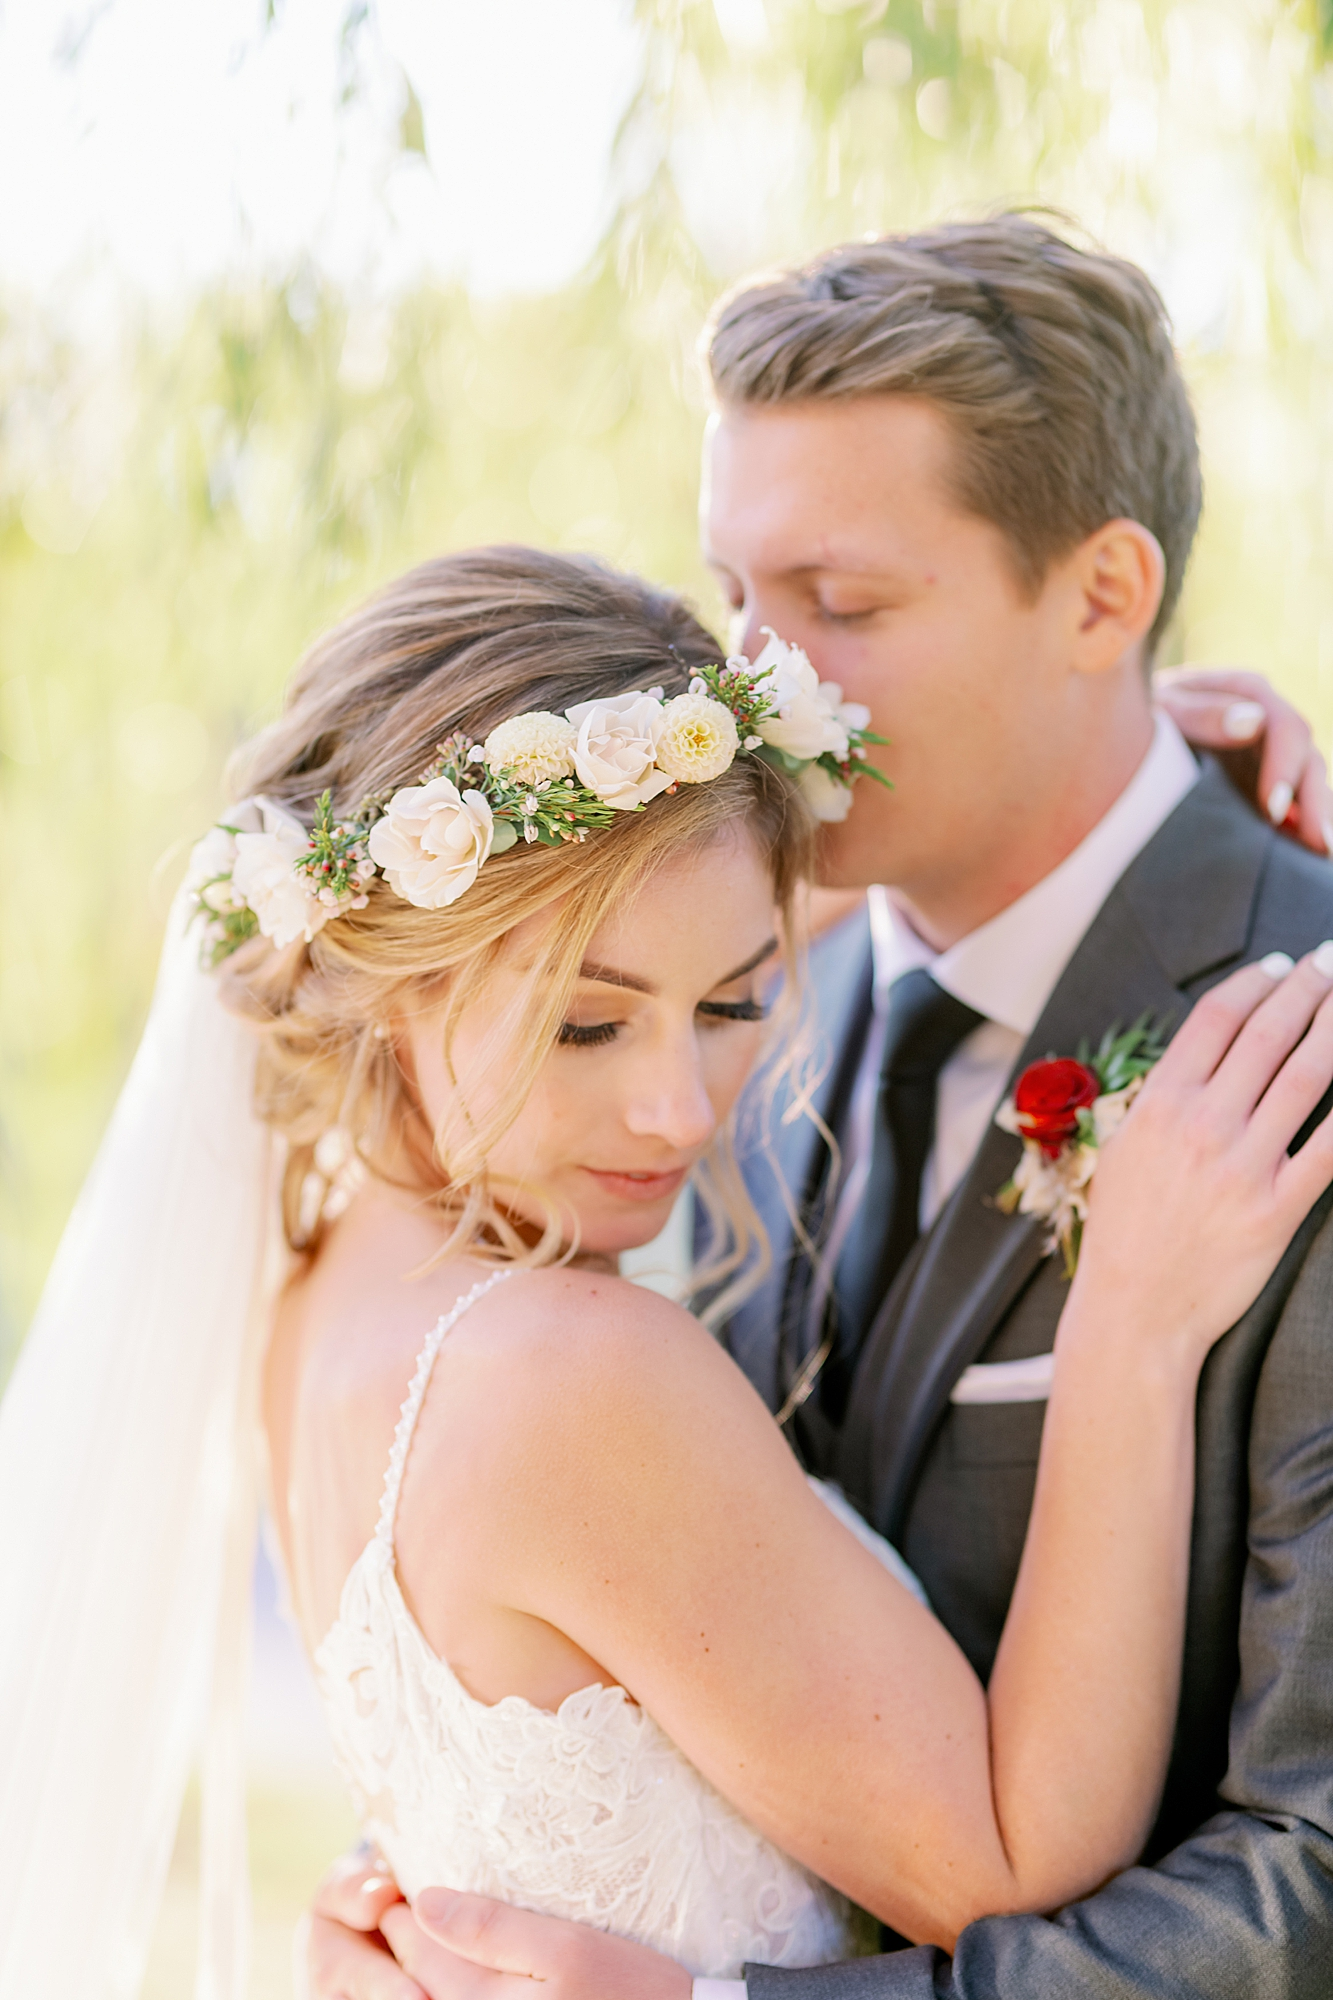 Cape May Wedding Photography by Magdalena Studios 0028.